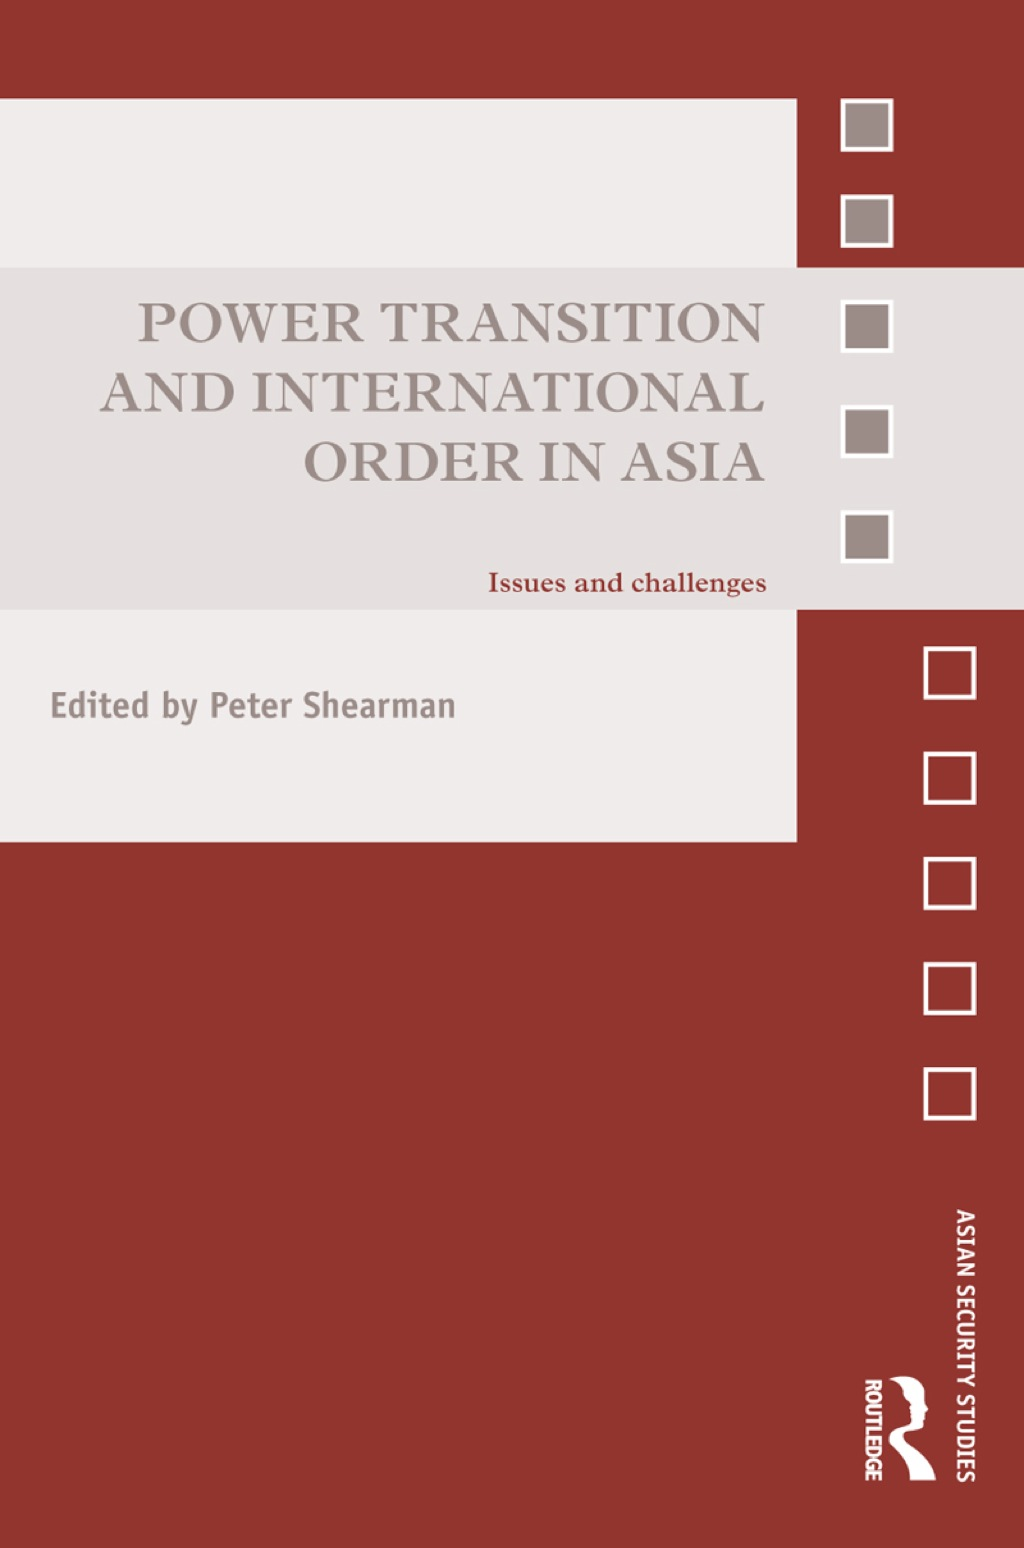 Power Transition and International Order in Asia (ebook) eBooks